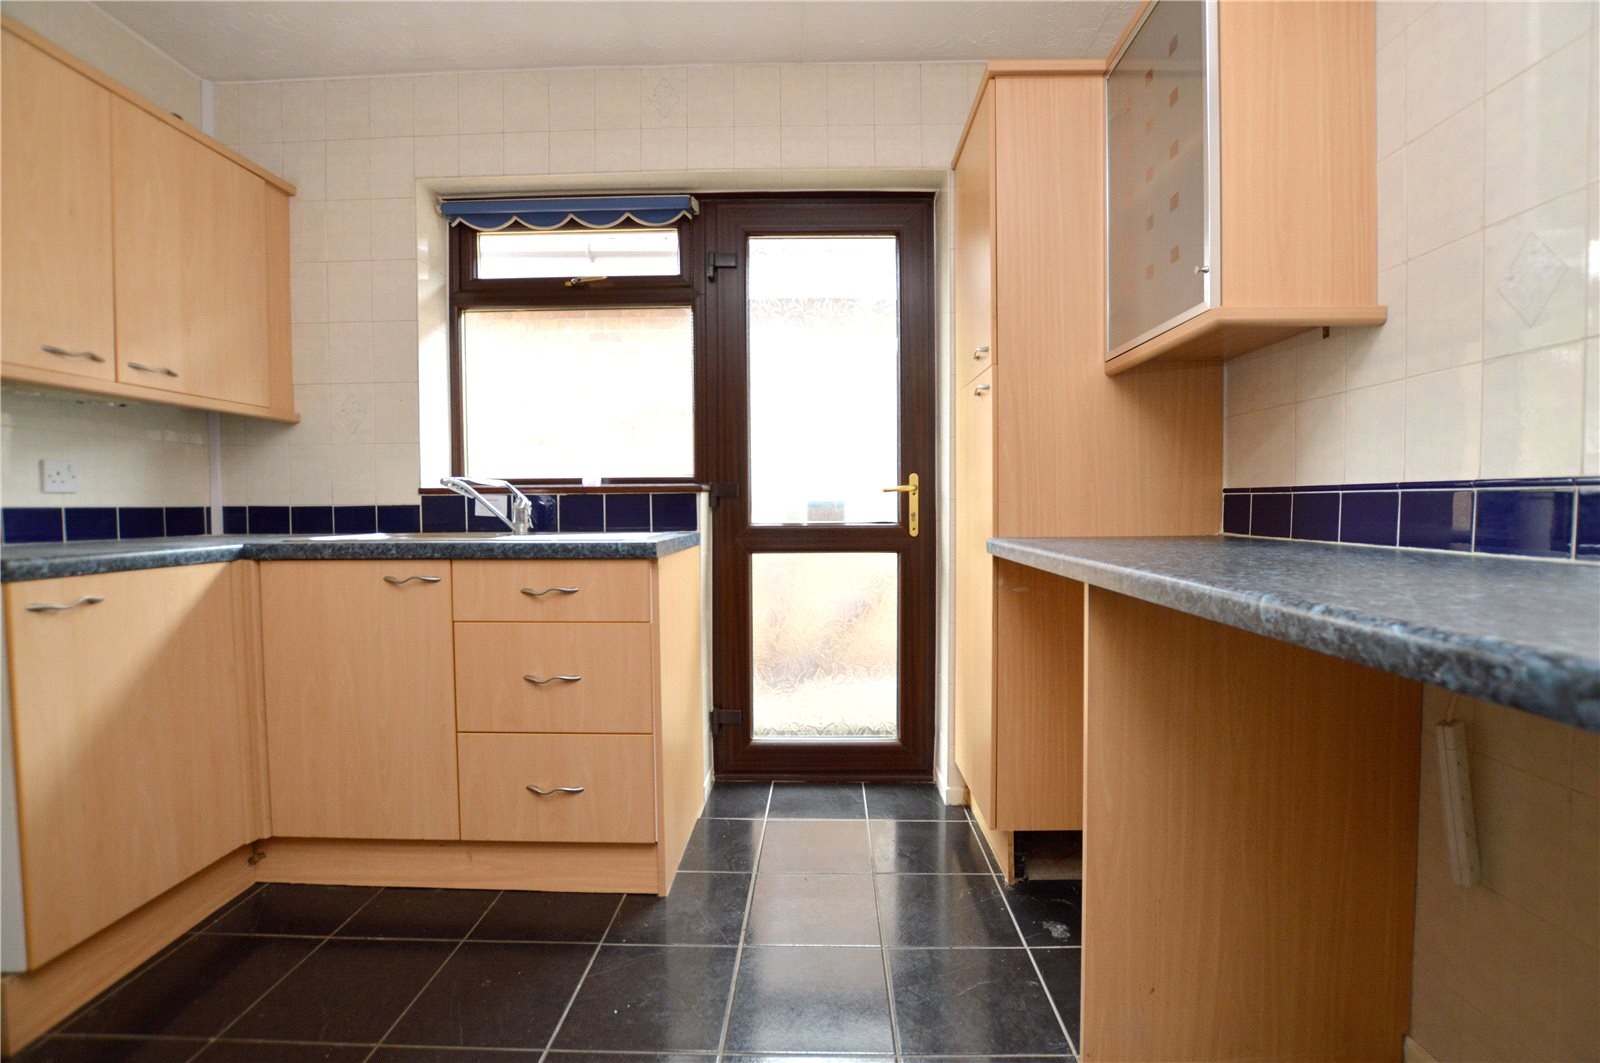 Property for sale in Pudsey, interior kitchen